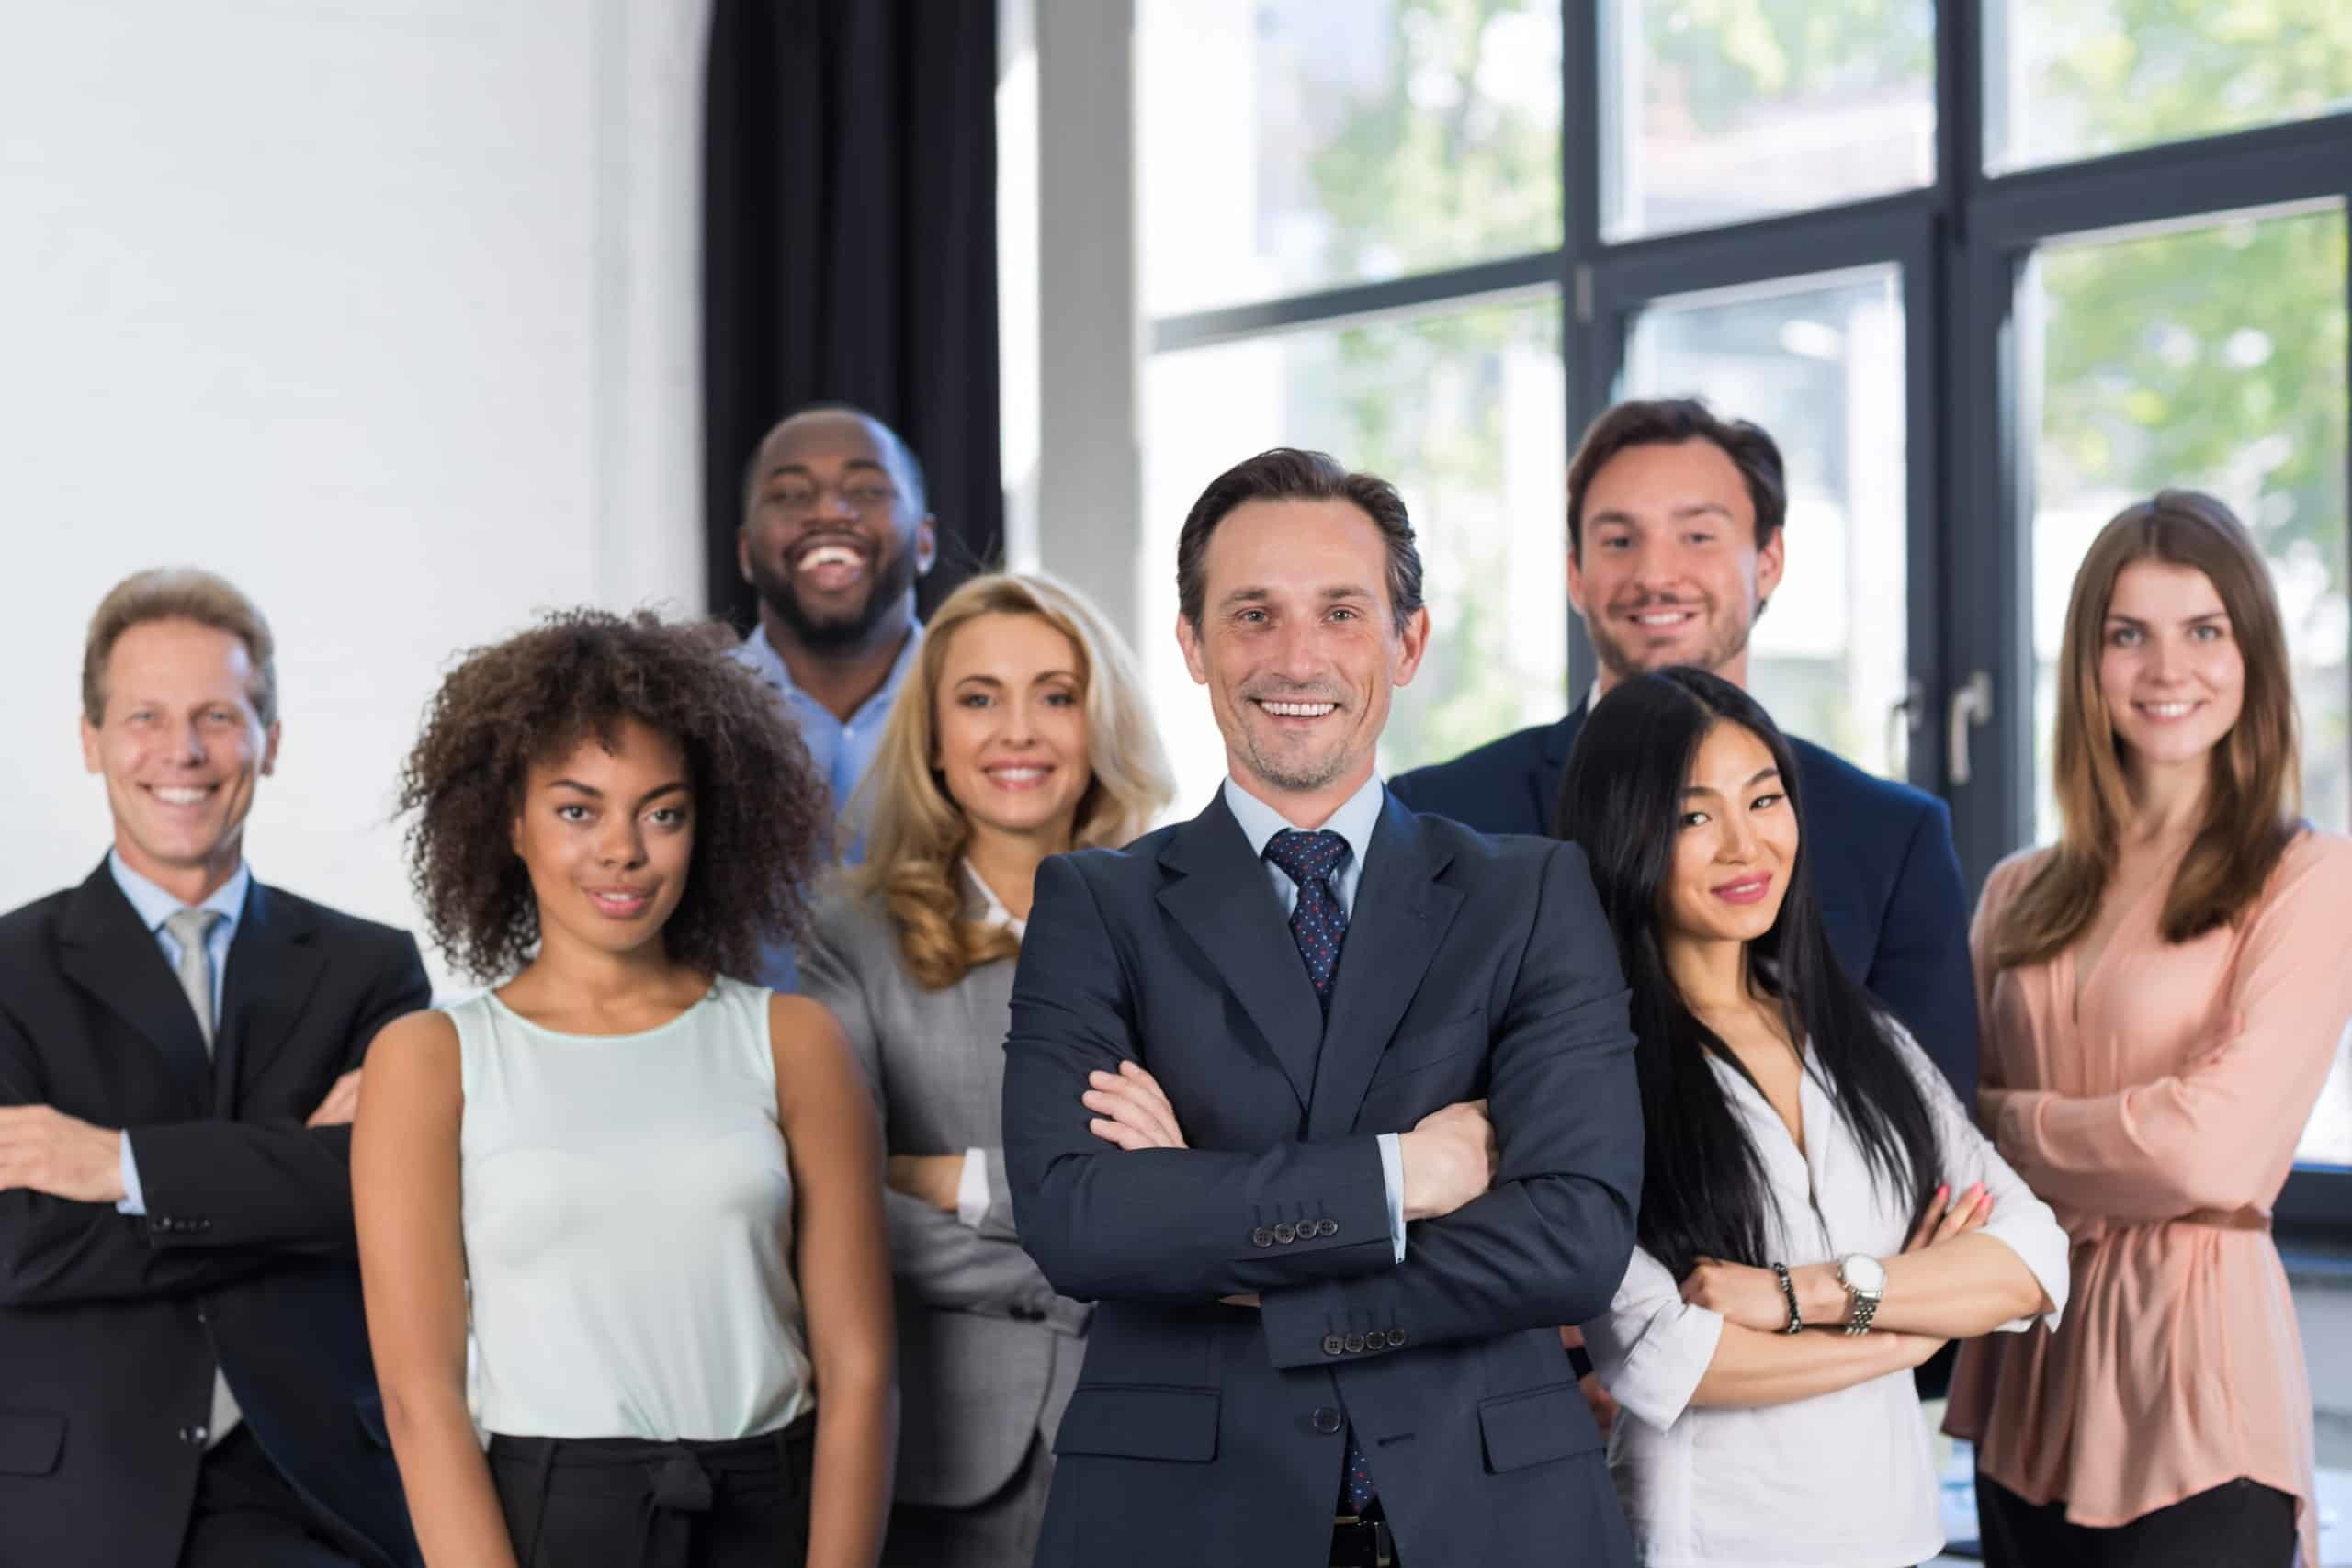 oss And Business People Group With Mature Leader On Foreground In Office, Leadership Concept, Successful Mix Race Team Of Businesspeople Wearing Suits, Professional Staff Happy Smiling